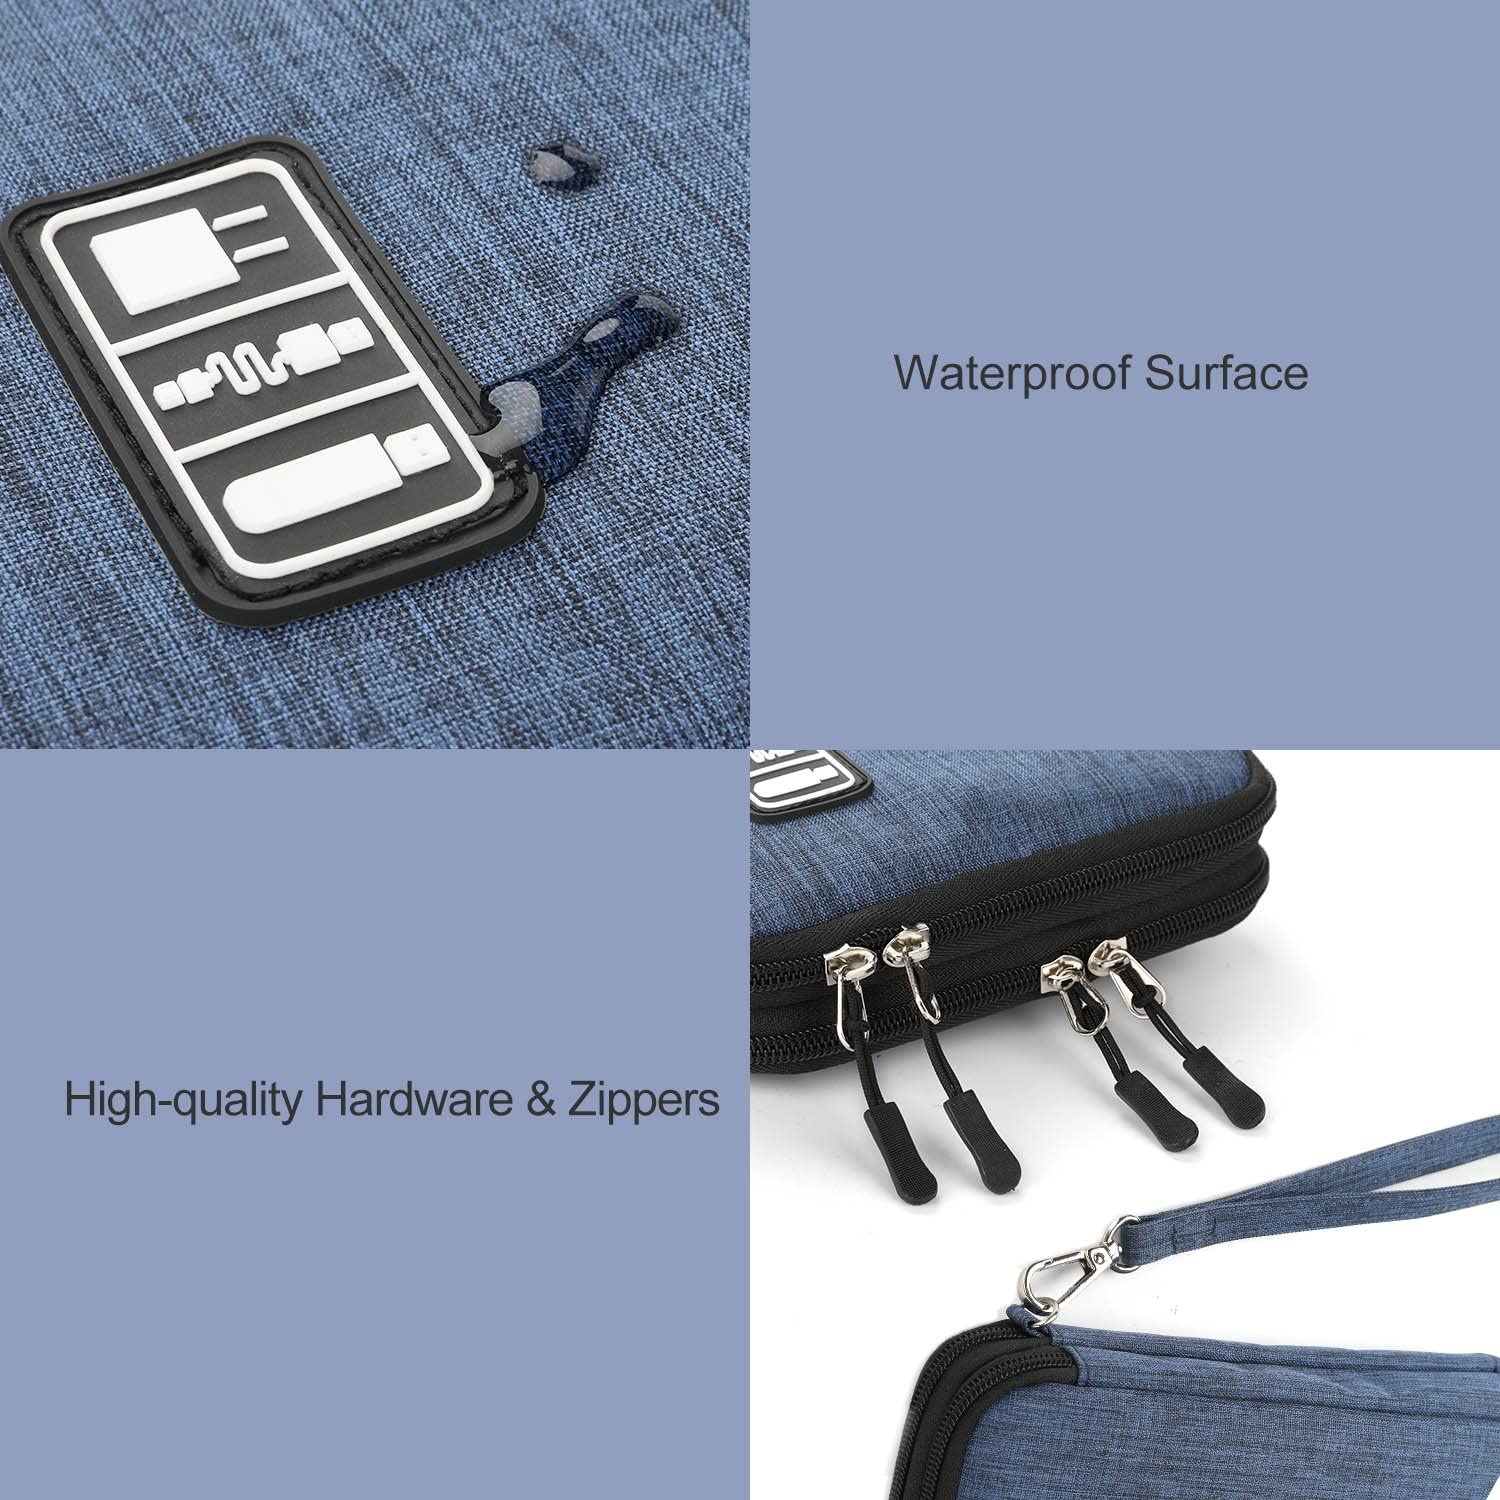 Black and Grey, Medium Jelly Comb Electronic Accessories Cable Organizer Bag Waterproof Travel Cable Storage Bag for Charging Cable Mini Tablet and More Cellphone Electronics Organizer